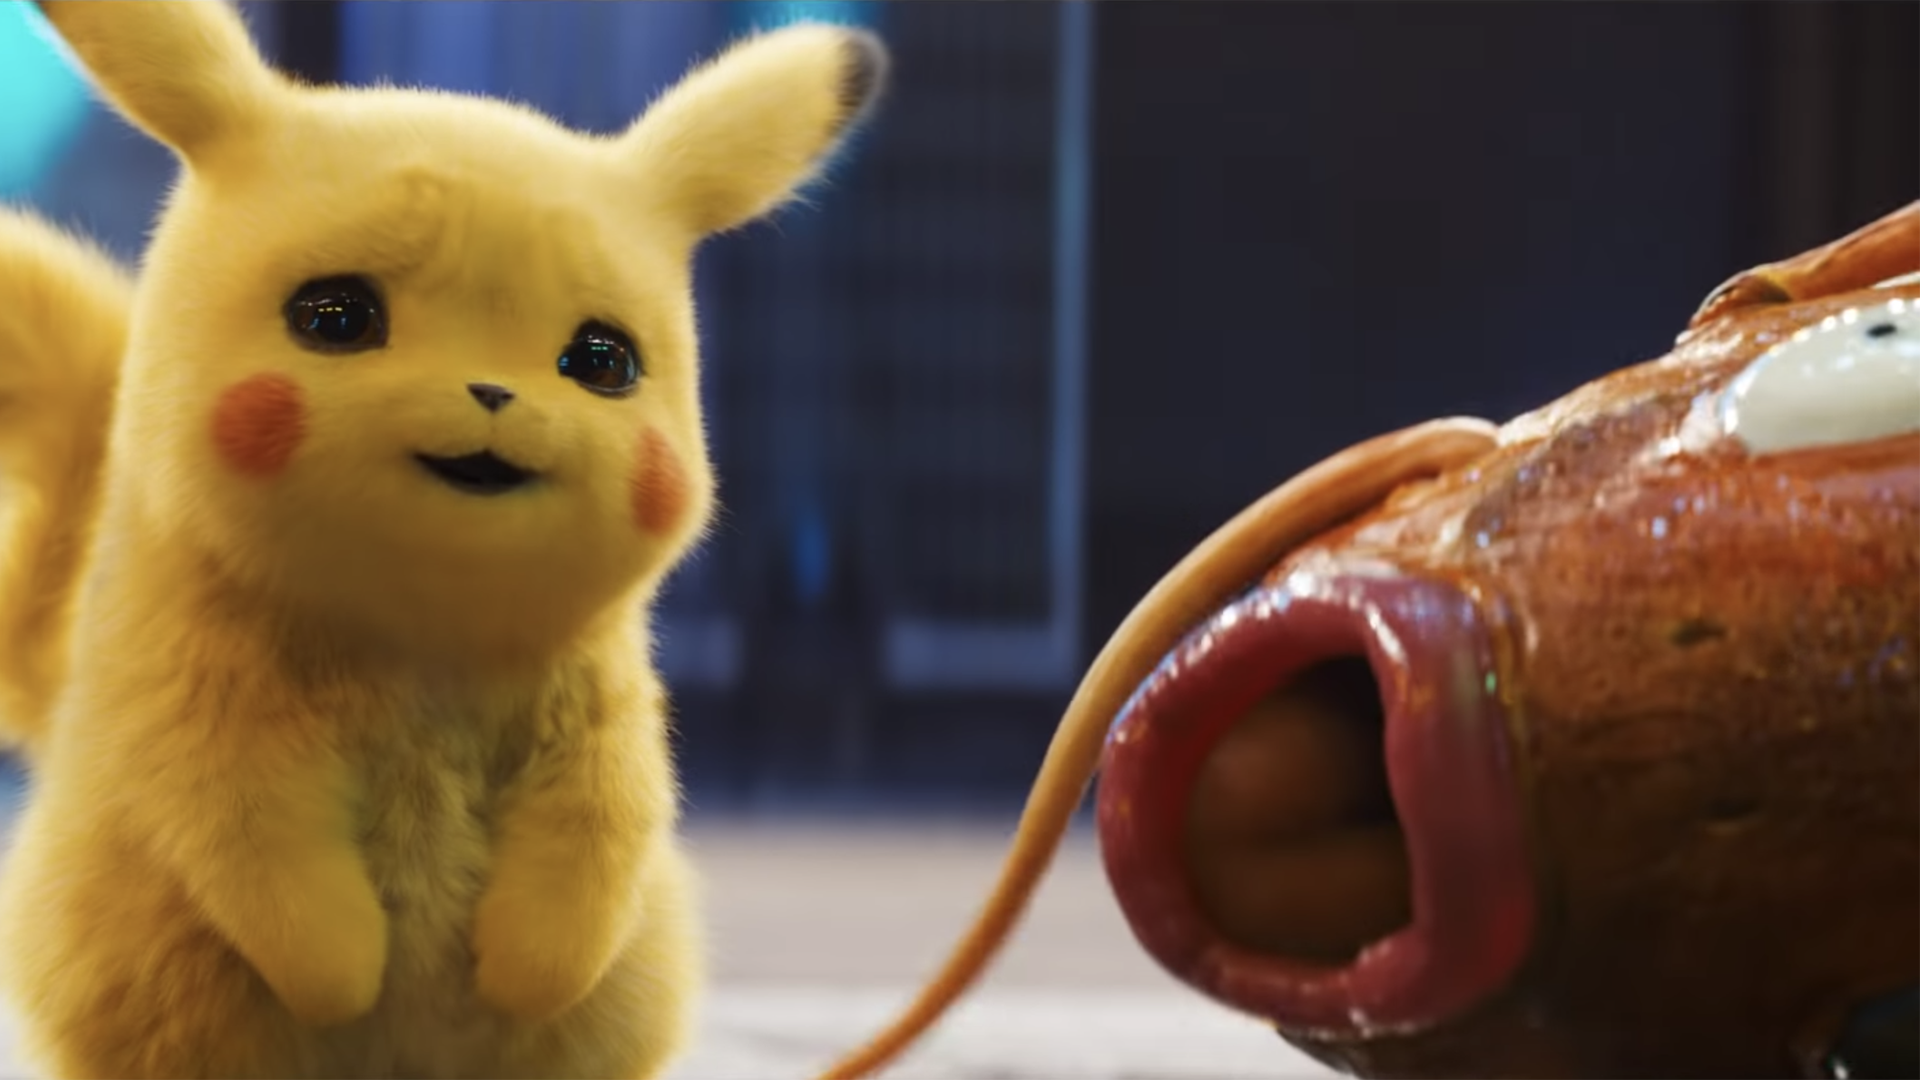 Detective Pikachu Wallpaper Download Fitrini S Wallpaper